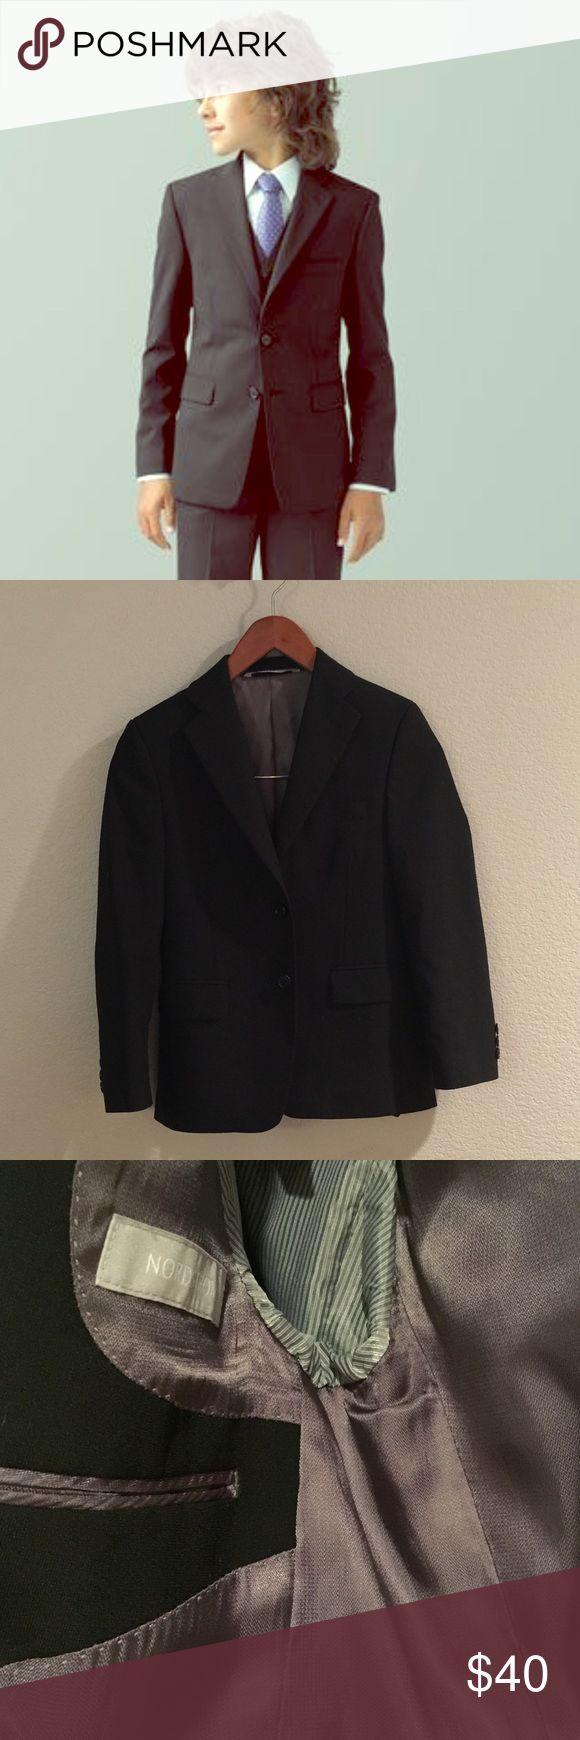 Nordstrom suit blazer boys Like new condition.  Fully lined.  Great quality.  Shoes and Button shirt are also available on page. If your interested in shirt and pants lmk, I have not posted them yet Nordstrom Jackets & Coats Blazers